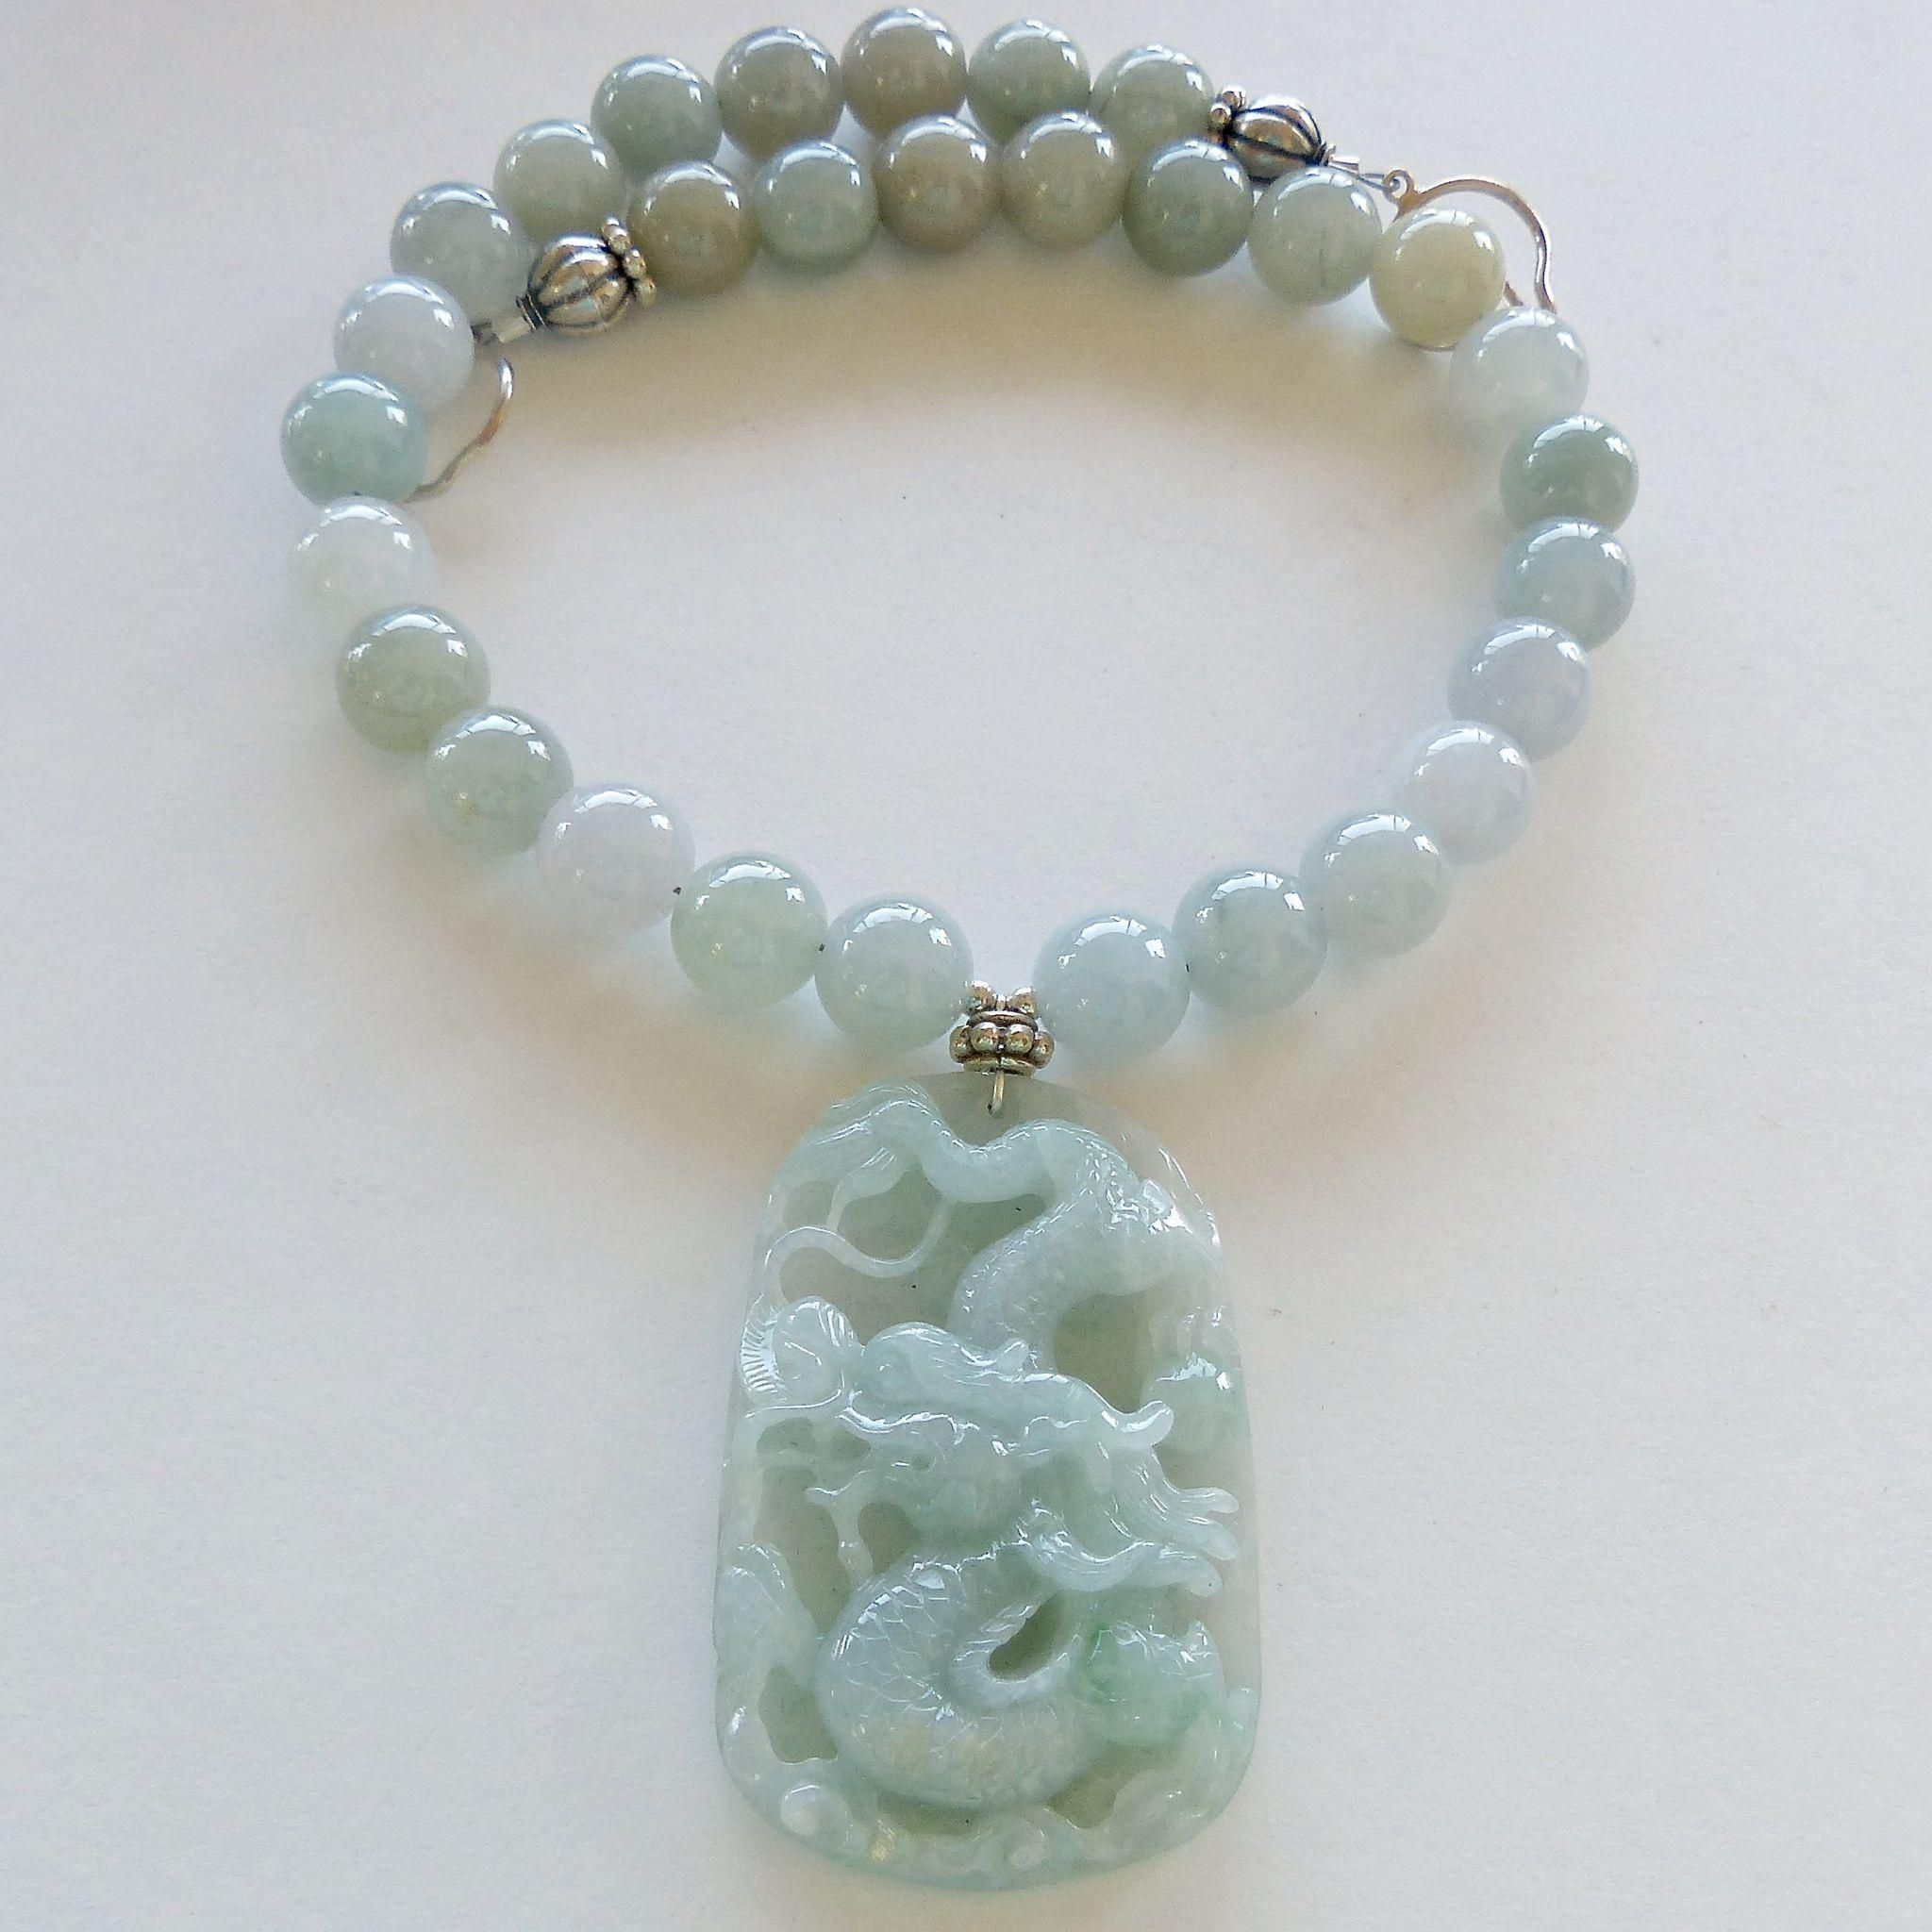 jade green pendant on frog search hippo tooth carved necklace